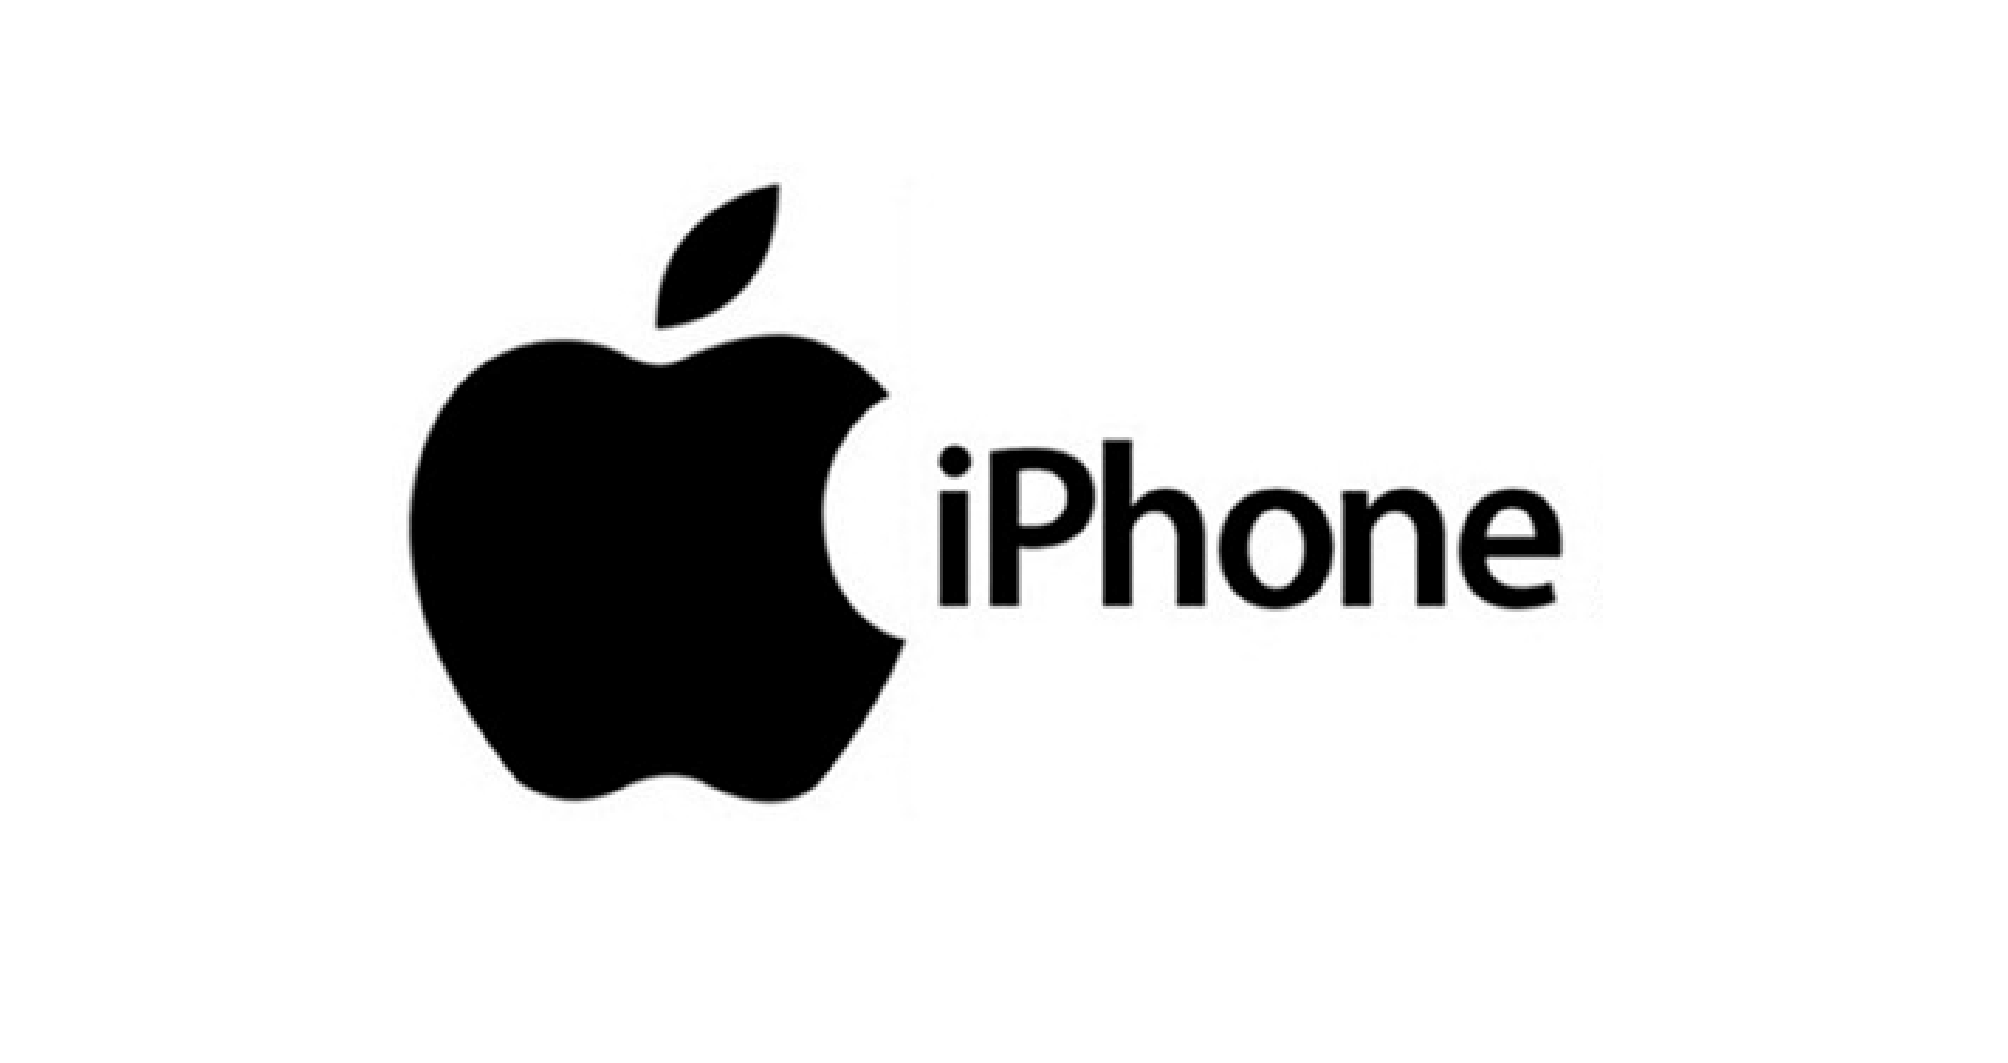 apple iphone logo png #527